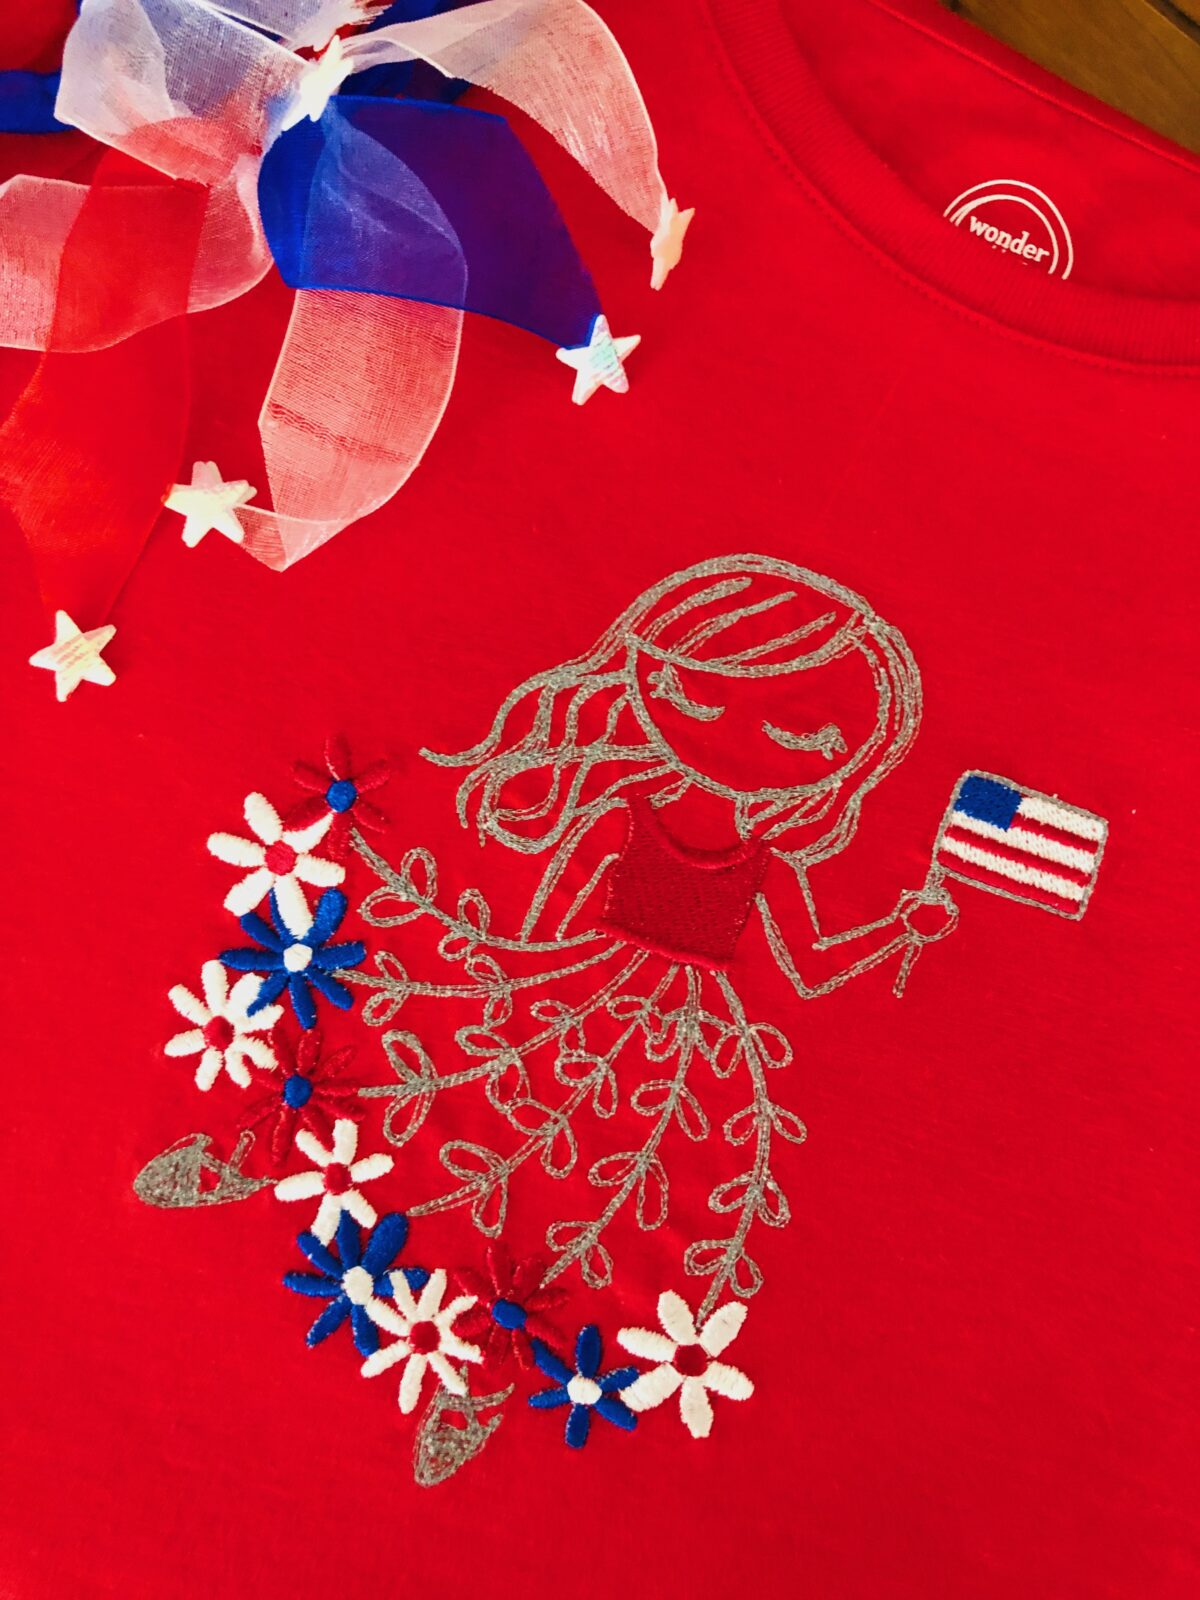 July 4 machine embroidery girl on T-shirt